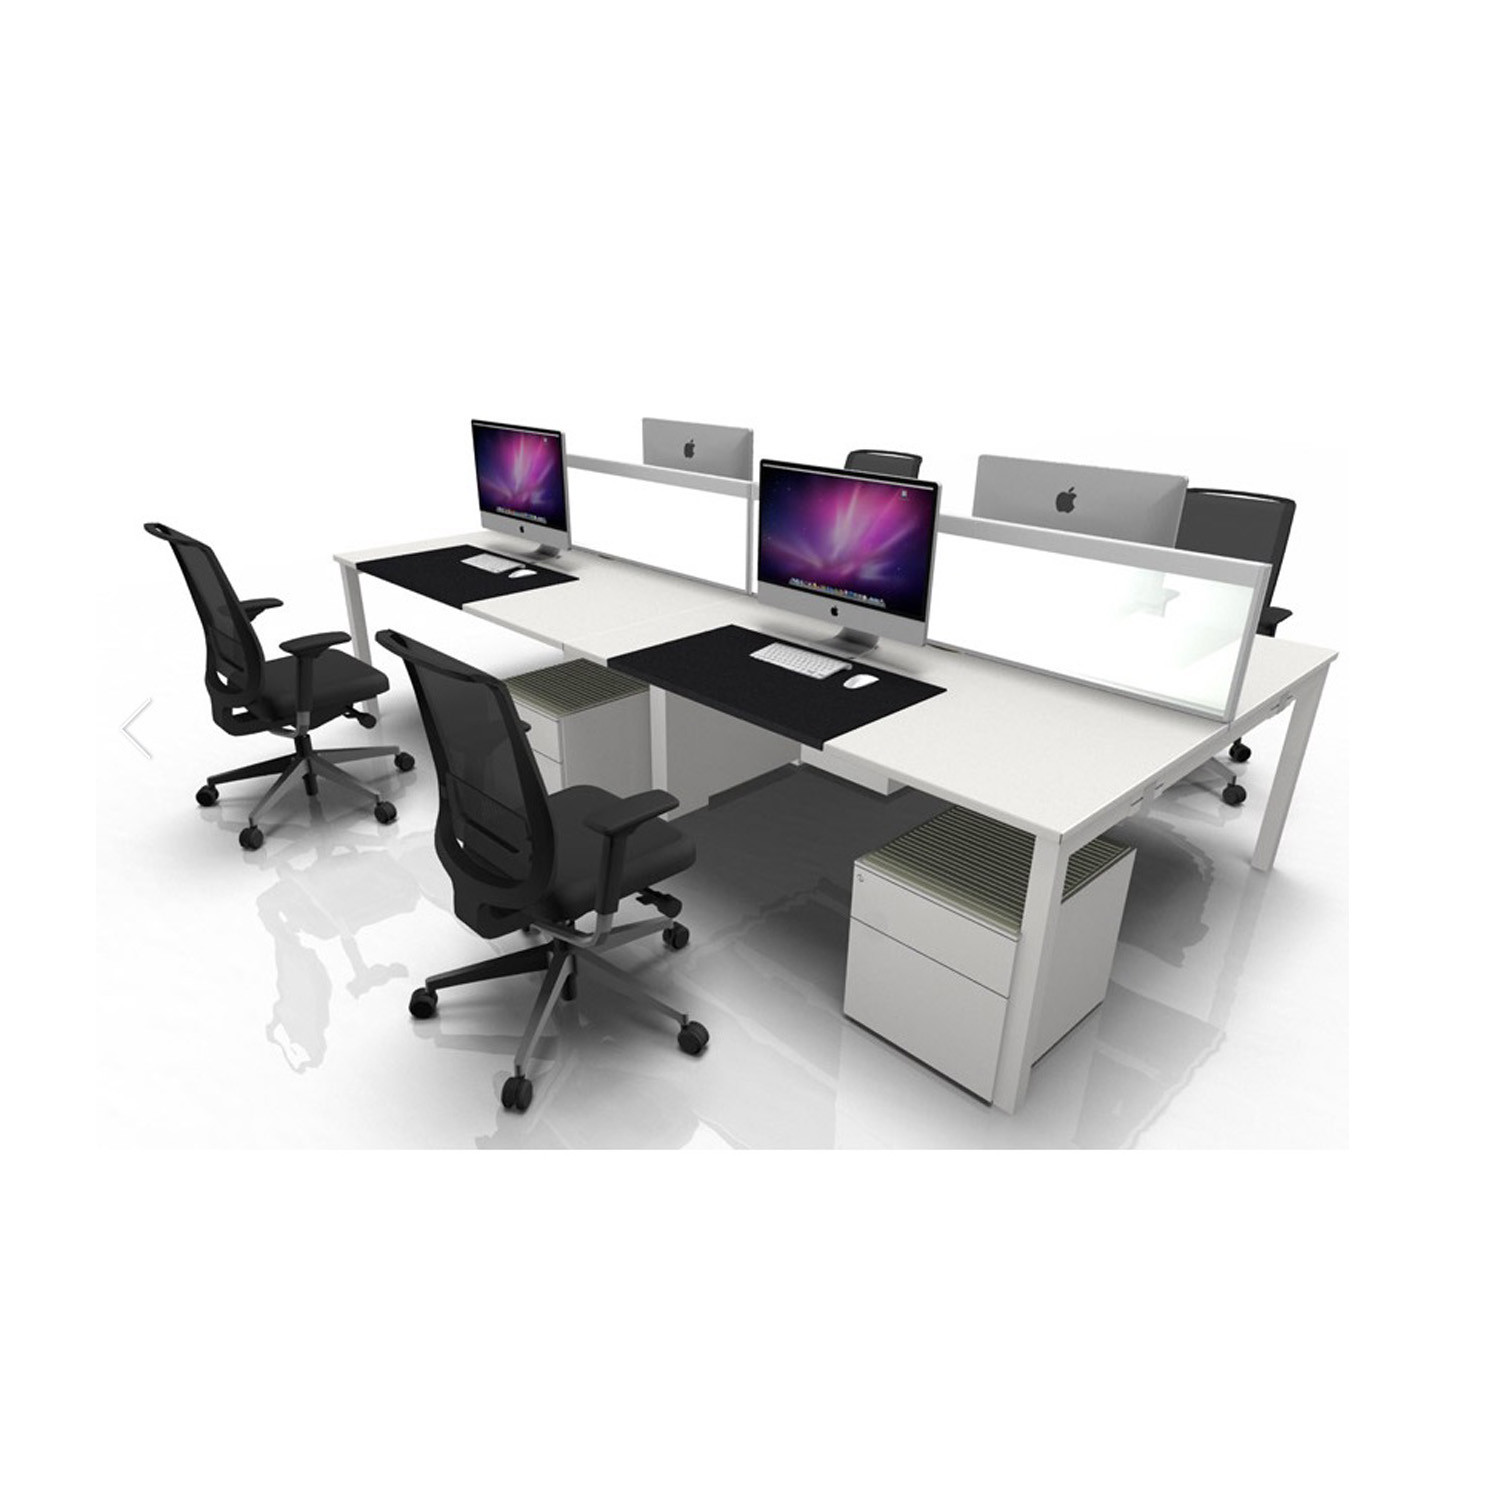 TriASS Desk System